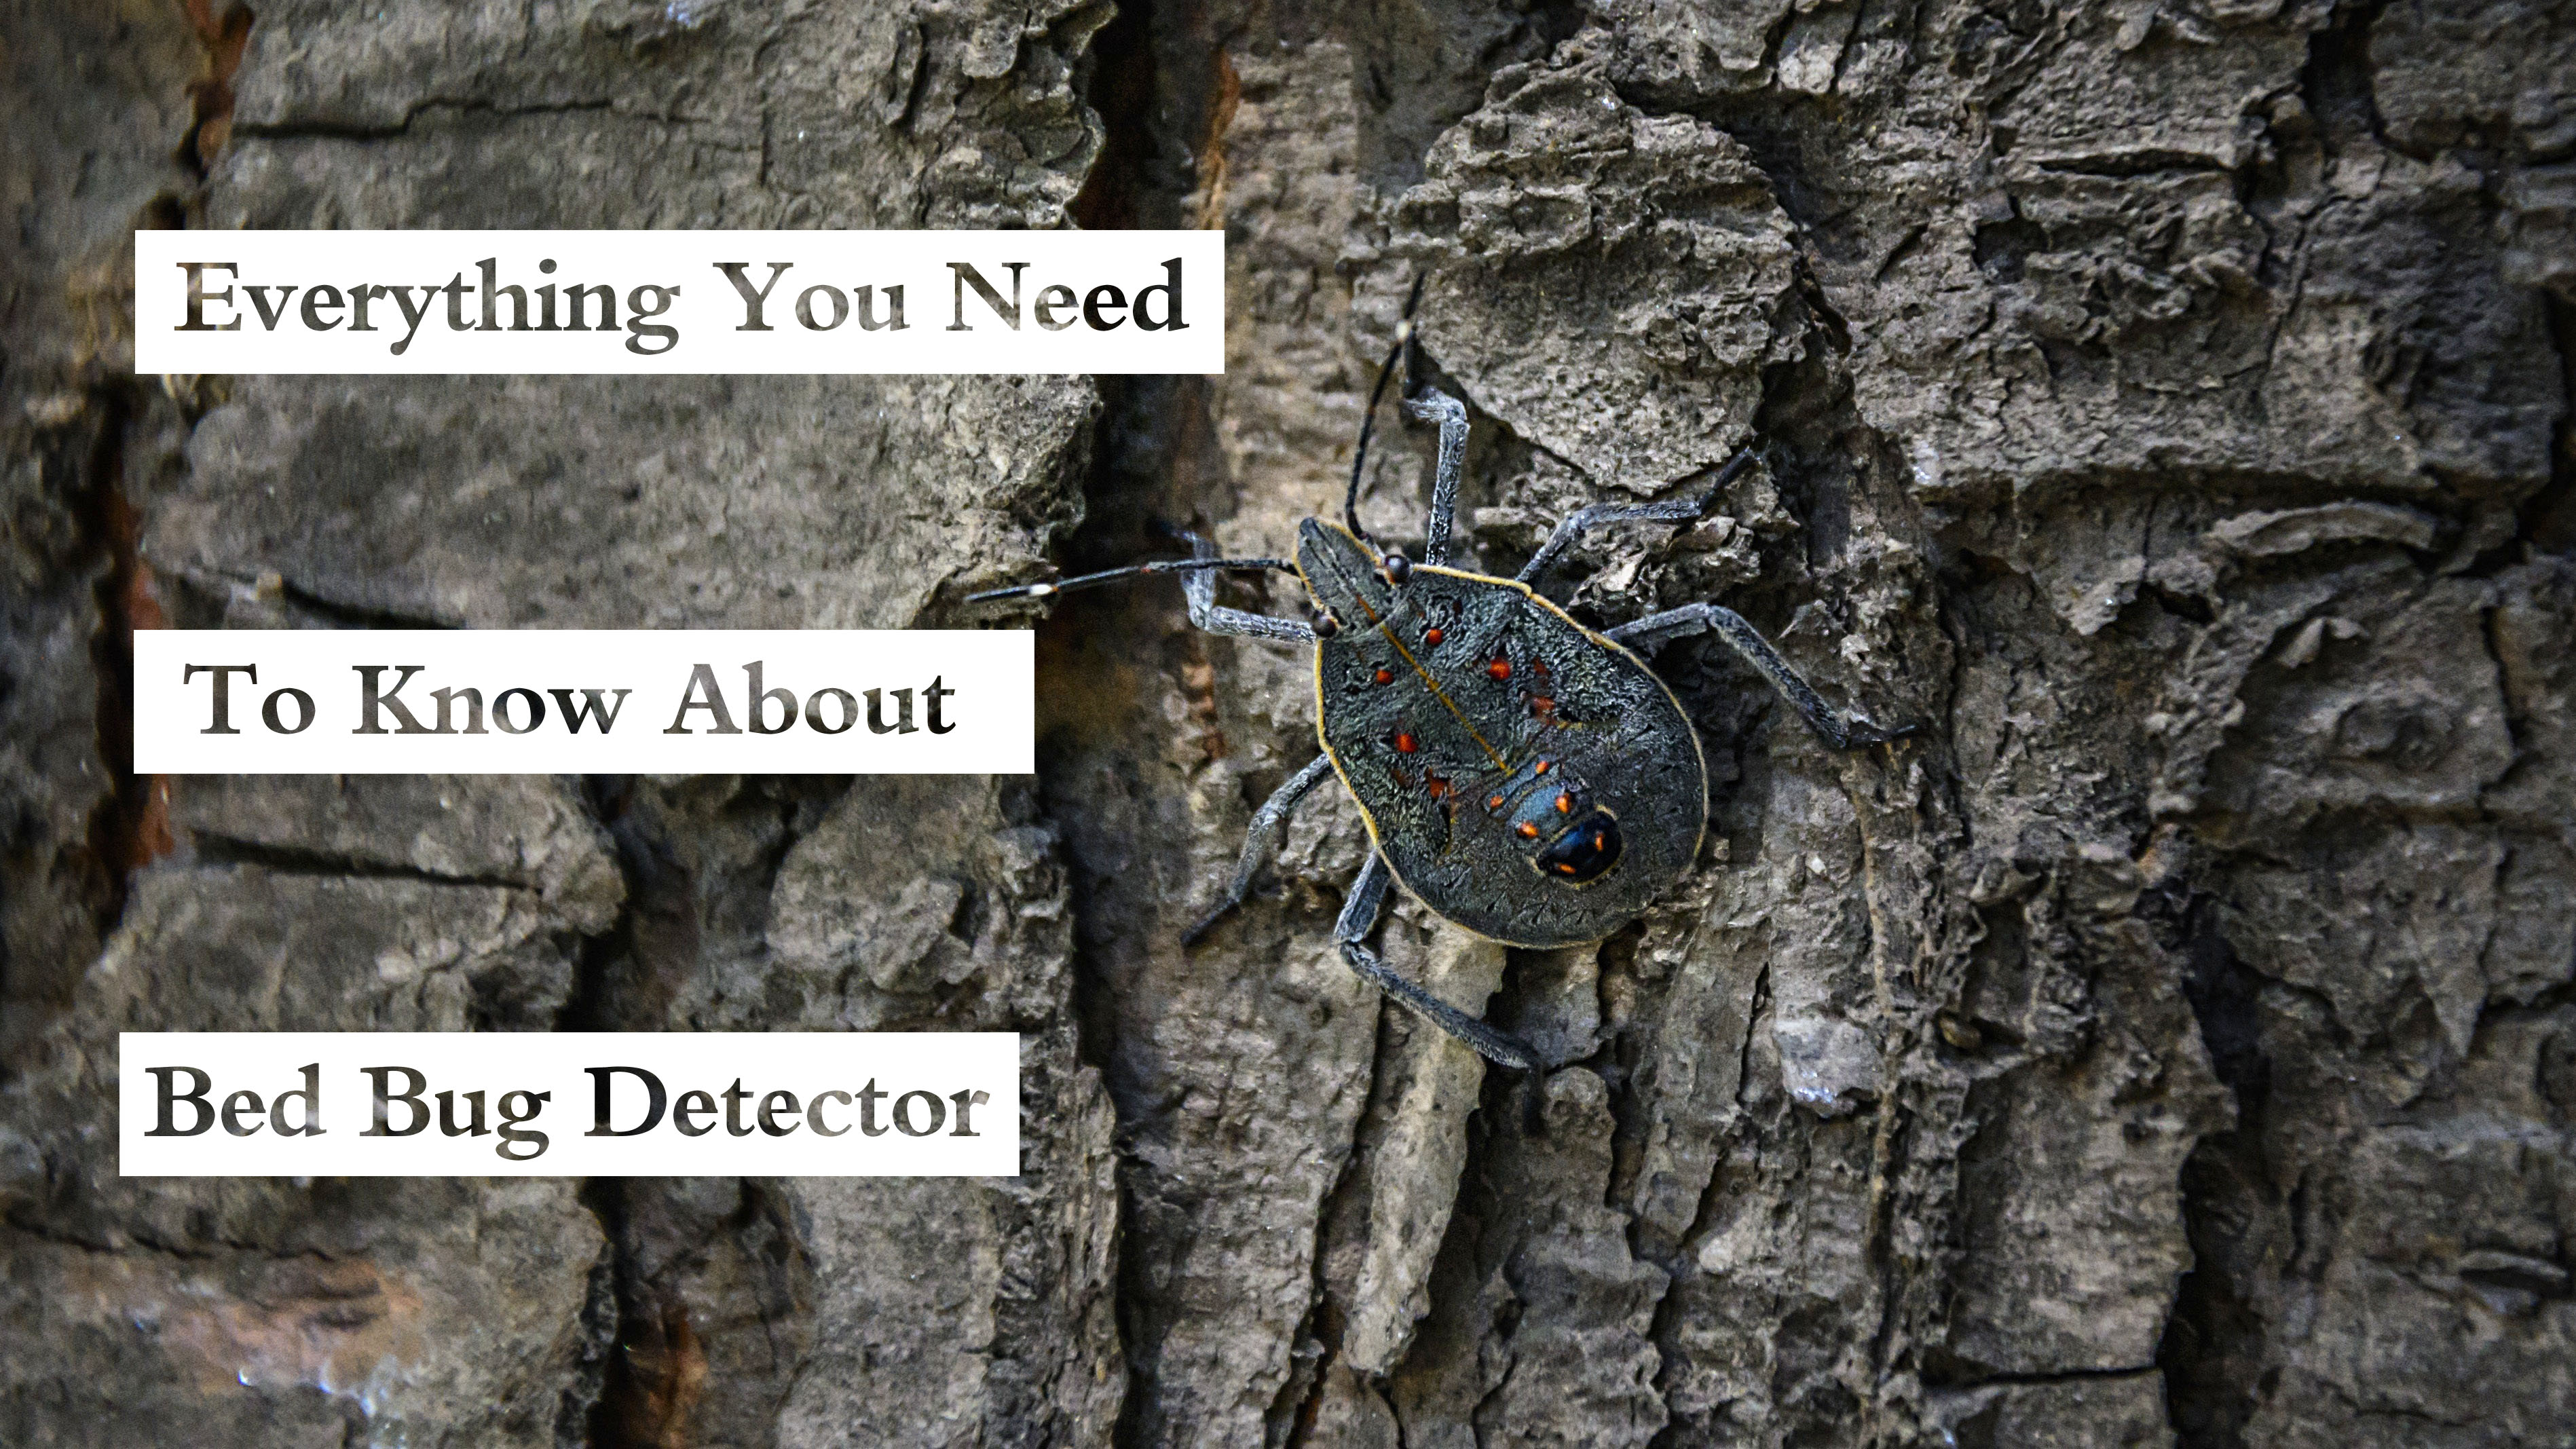 Bed Bug Detector